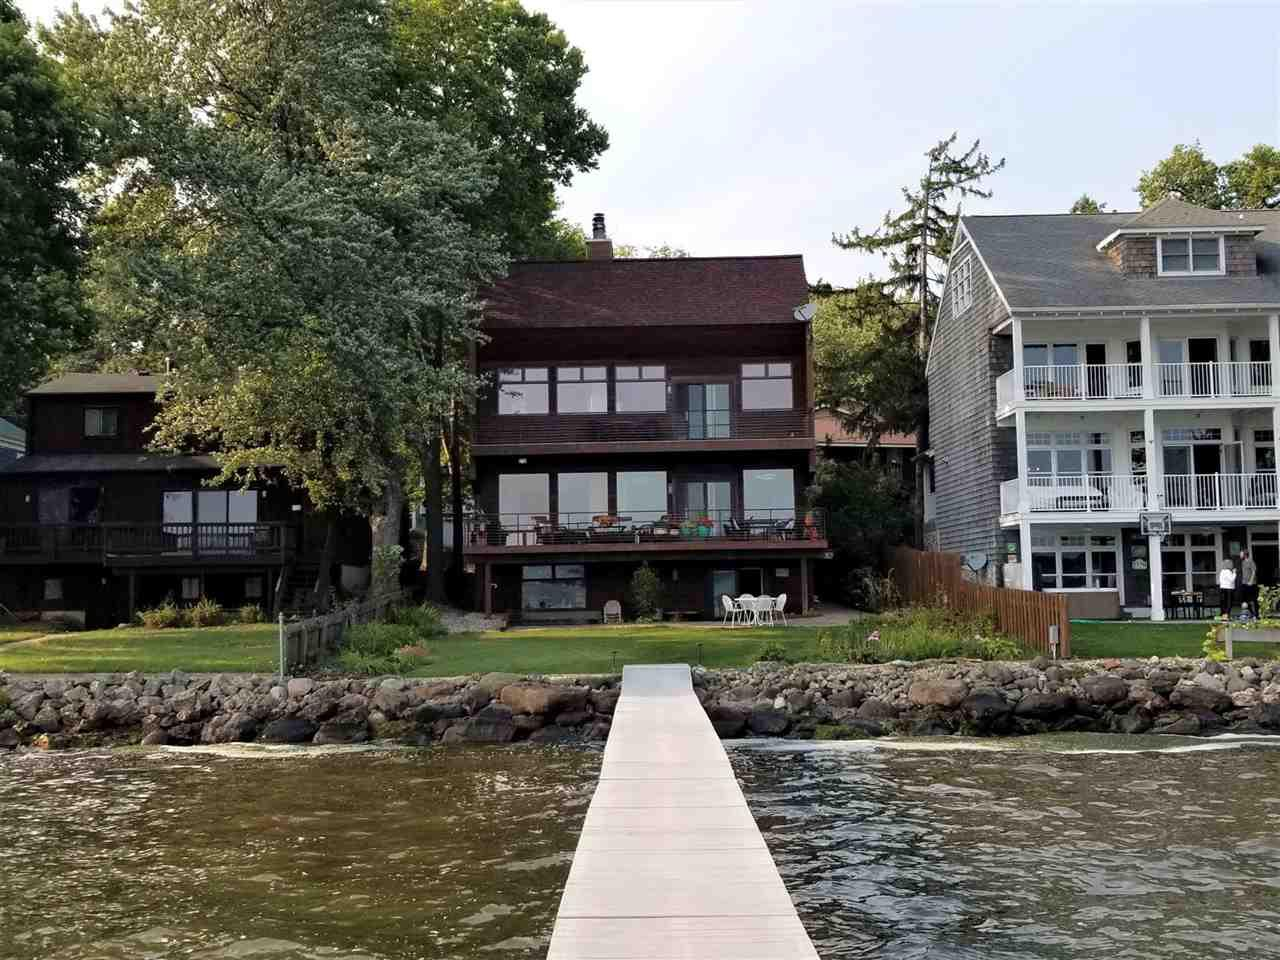 Don't miss your opportunity to enjoy Lake Living! 50 Ft of Lake Mendota frontage located in the desired Middleton-Cross Plains School District! Home features a custom contemporary design that just keeps going. Over 4,500 finished SQ FT of living space. Enjoy 3 levels of Lake & Capital views! Bright Chef's Kitchen has abundant counter/cabinet space w/breakfast bar, pantry, Island, Sub-Zero Refrigerator, Viking Range, Double Ovens & the Wine fridge is included! Master bedrm has vaulted ceilings & skylights w/full bath & access to deck. Lower level adorns kitchen, wet bar, office, exercise/craft/game rm & walkout to the brick paver patio. Large windows w/Southern exposure enhances the passive Solar heating system in home. 3 fireplaces, two-car attached garage & workshop. And More- Must See!